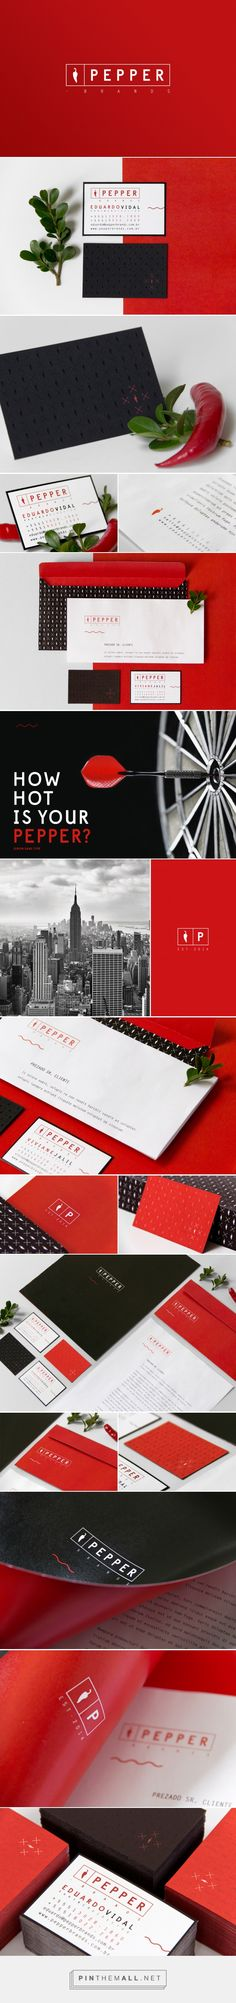 Pepper Brands Licensing Agency Brand Identity by 303 Design Squadron | Fivestar Branding Agency – Design and Branding Agency & Curated Inspiration Gallery